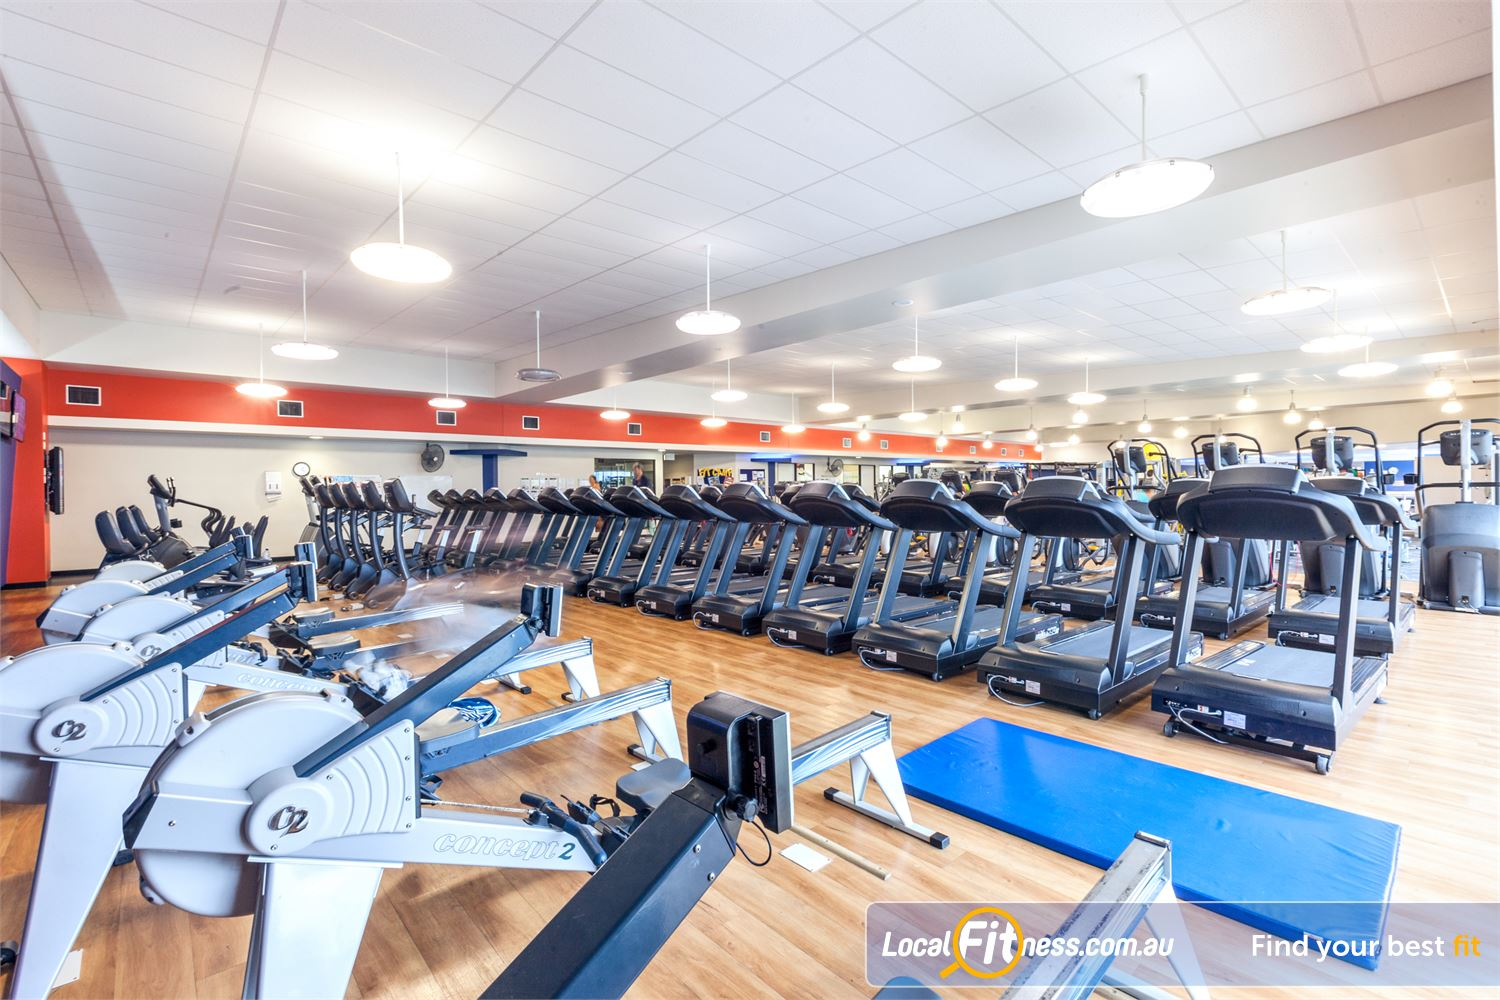 Goodlife Health Clubs Caloundra The latest cycle bikes, cross trainers, treadmills and rowers.